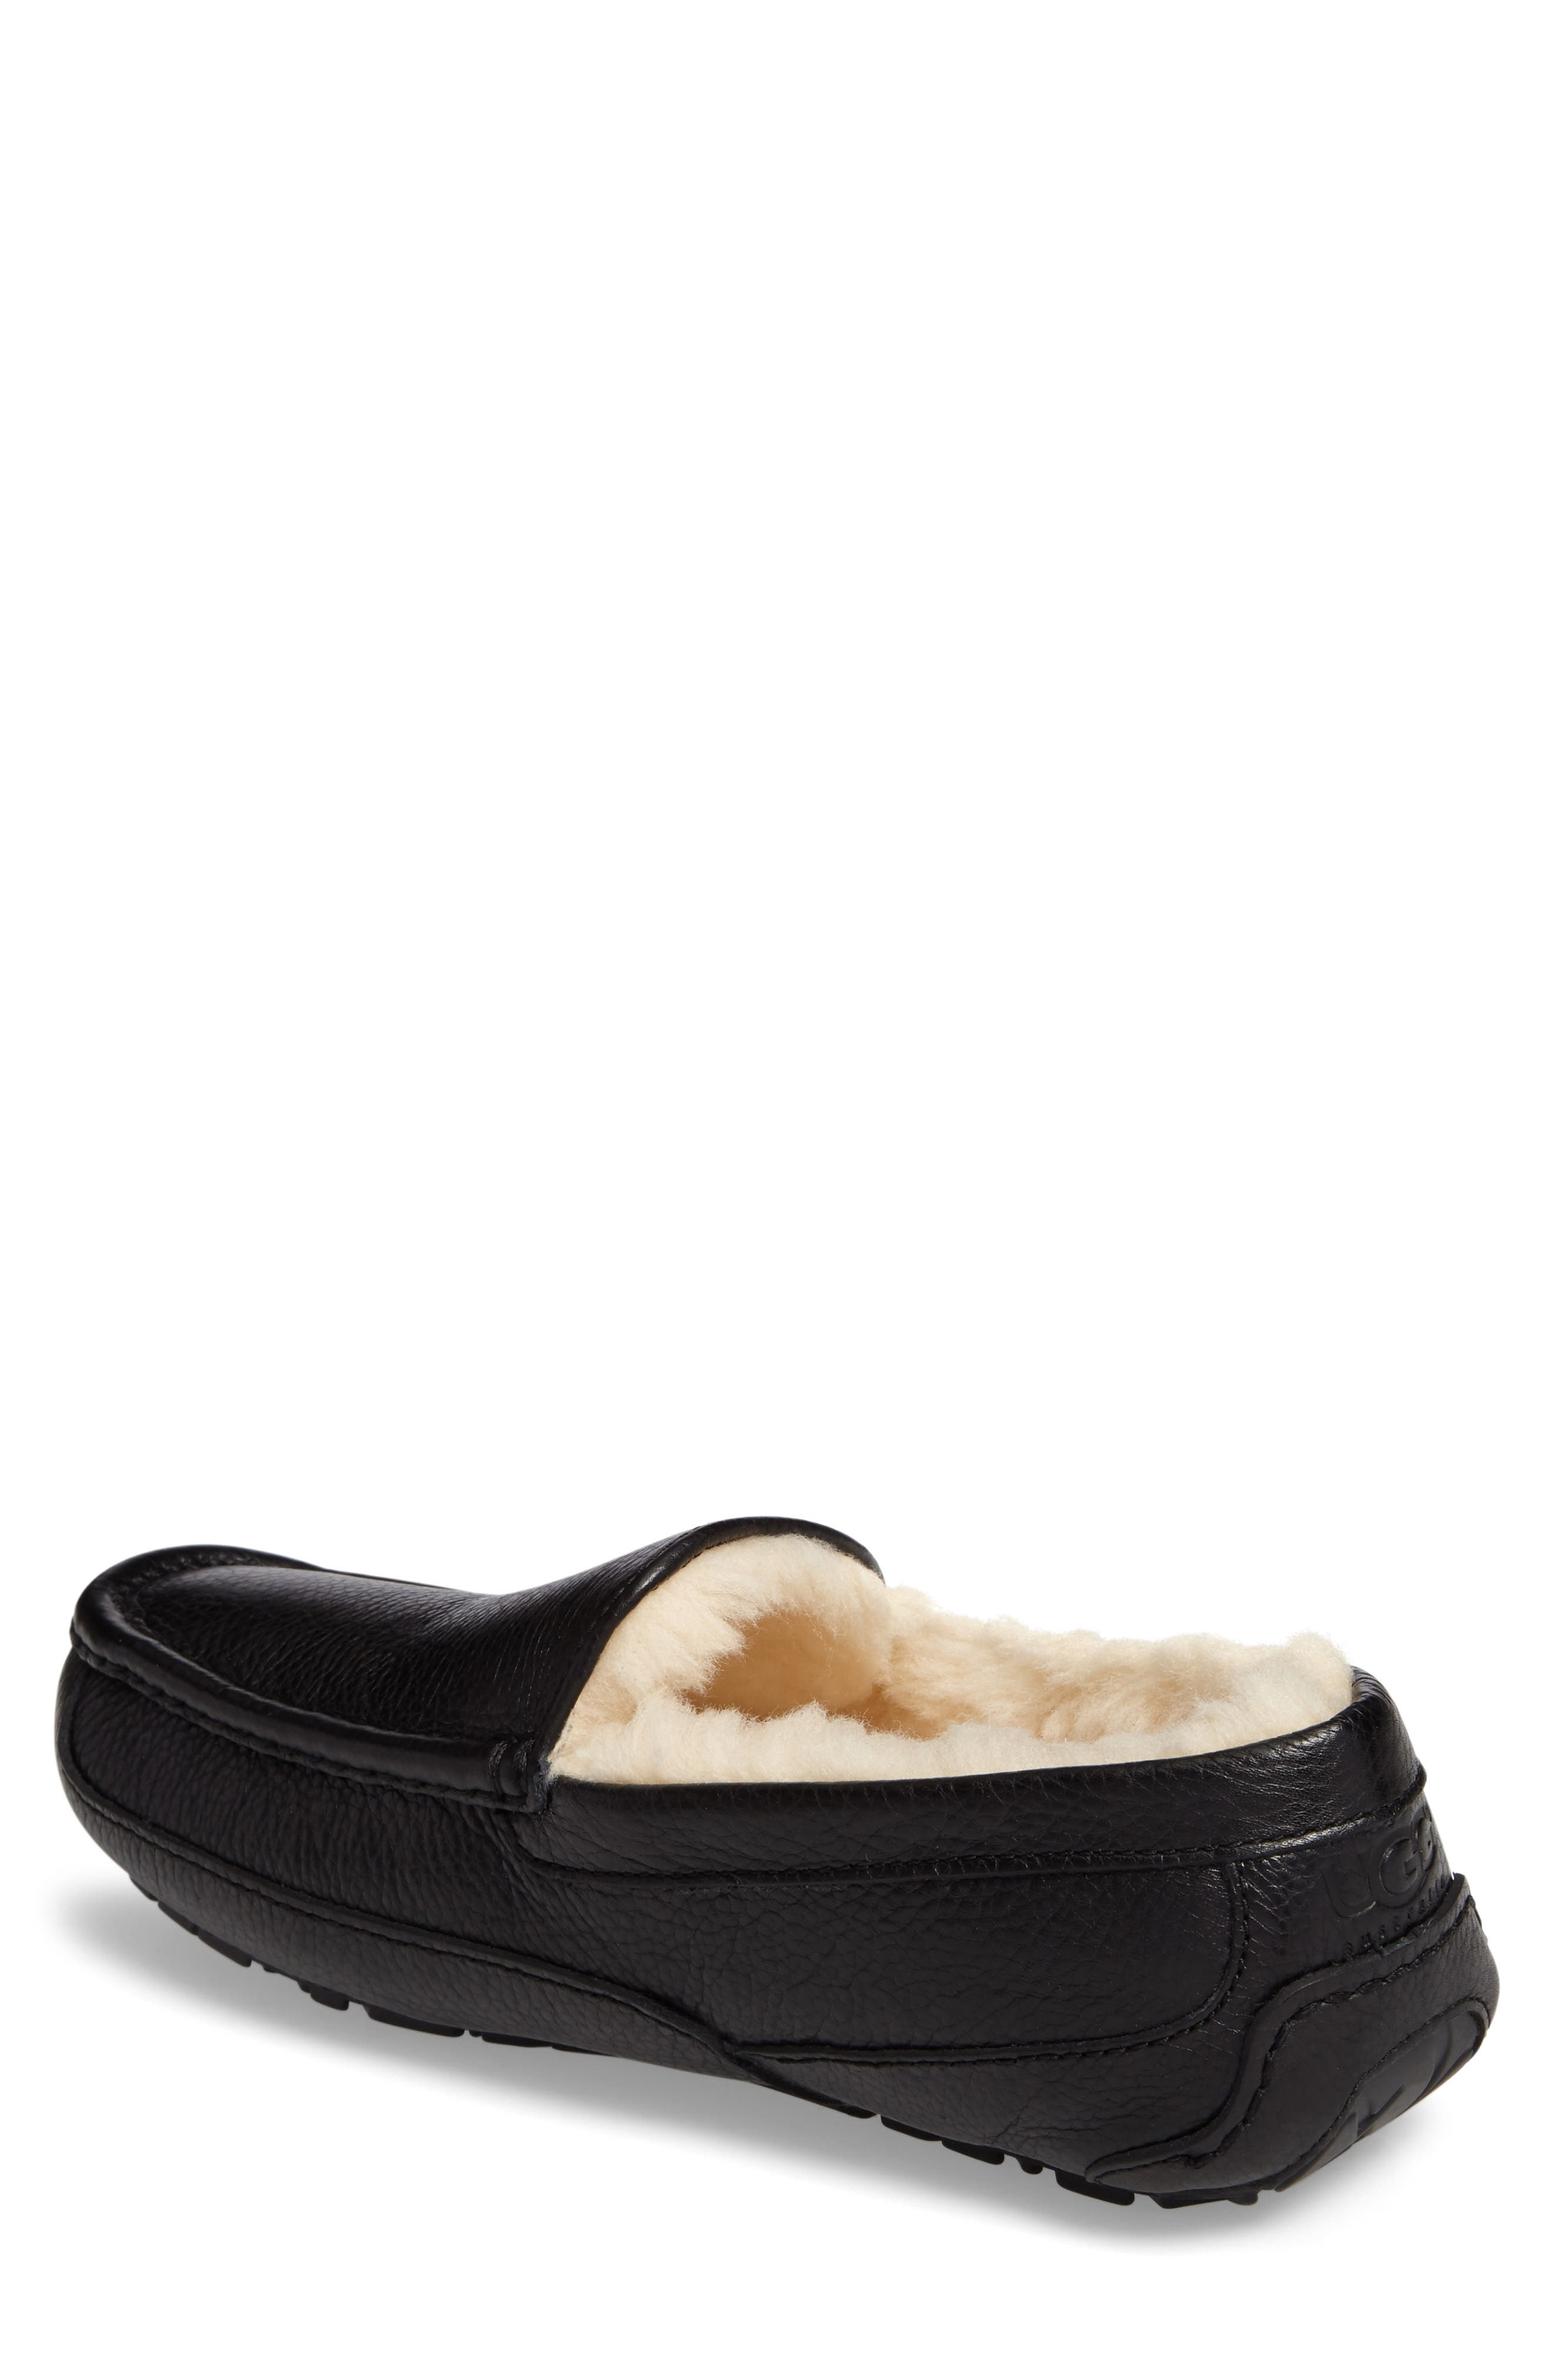 Ascot Leather Slipper,                             Alternate thumbnail 2, color,                             BLACK